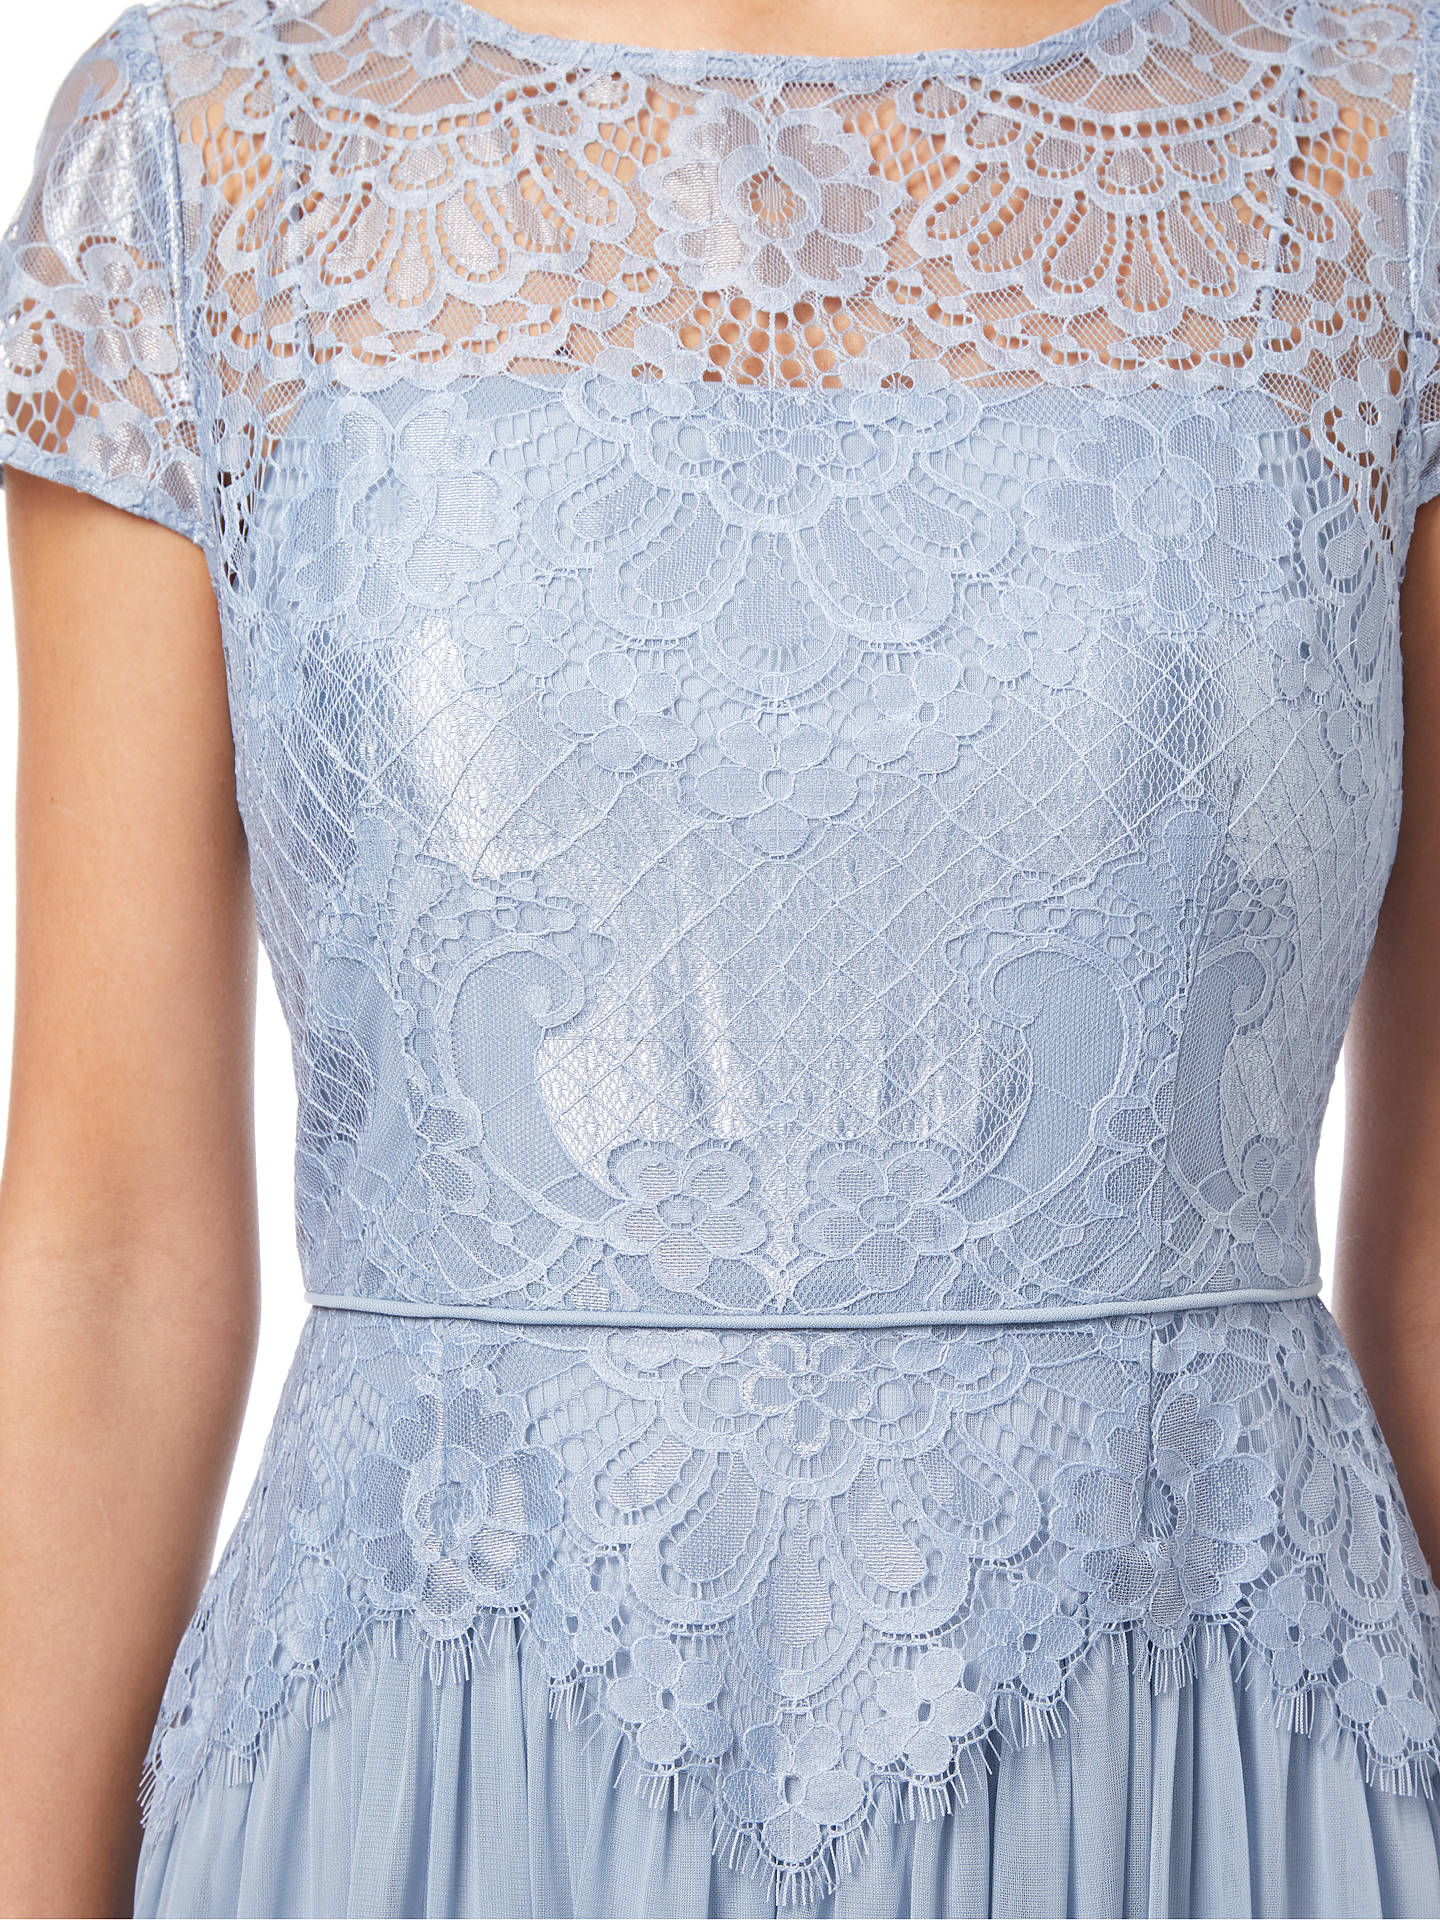 BuyAdrianna Papell Lace Long Dress, Dusty Periwinkle, 8 Online at johnlewis.com